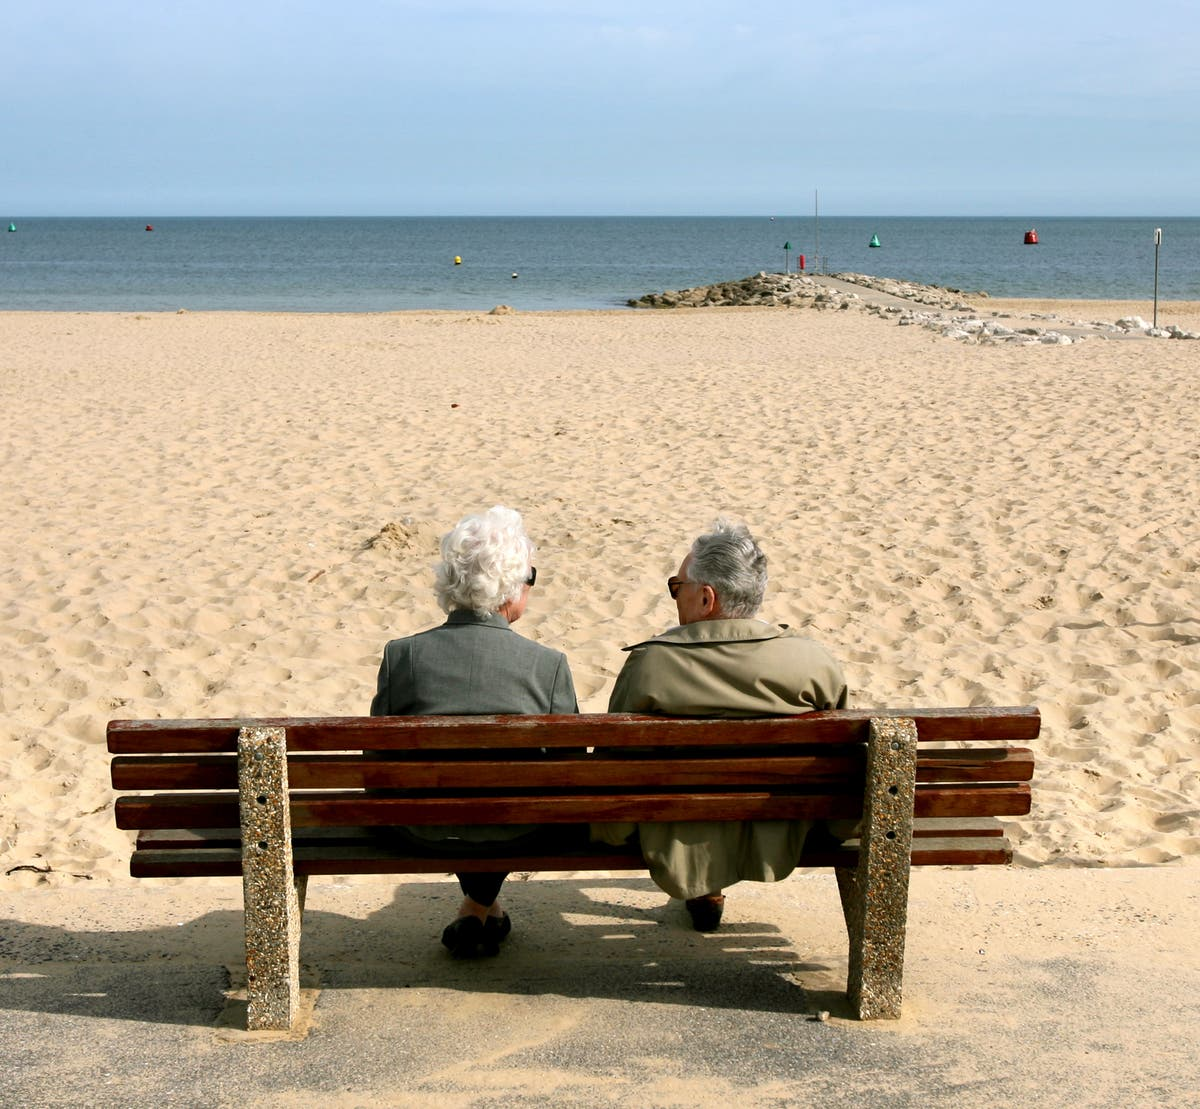 Switch DIY pension provider and save £22,800 before retirement, Which? reveals